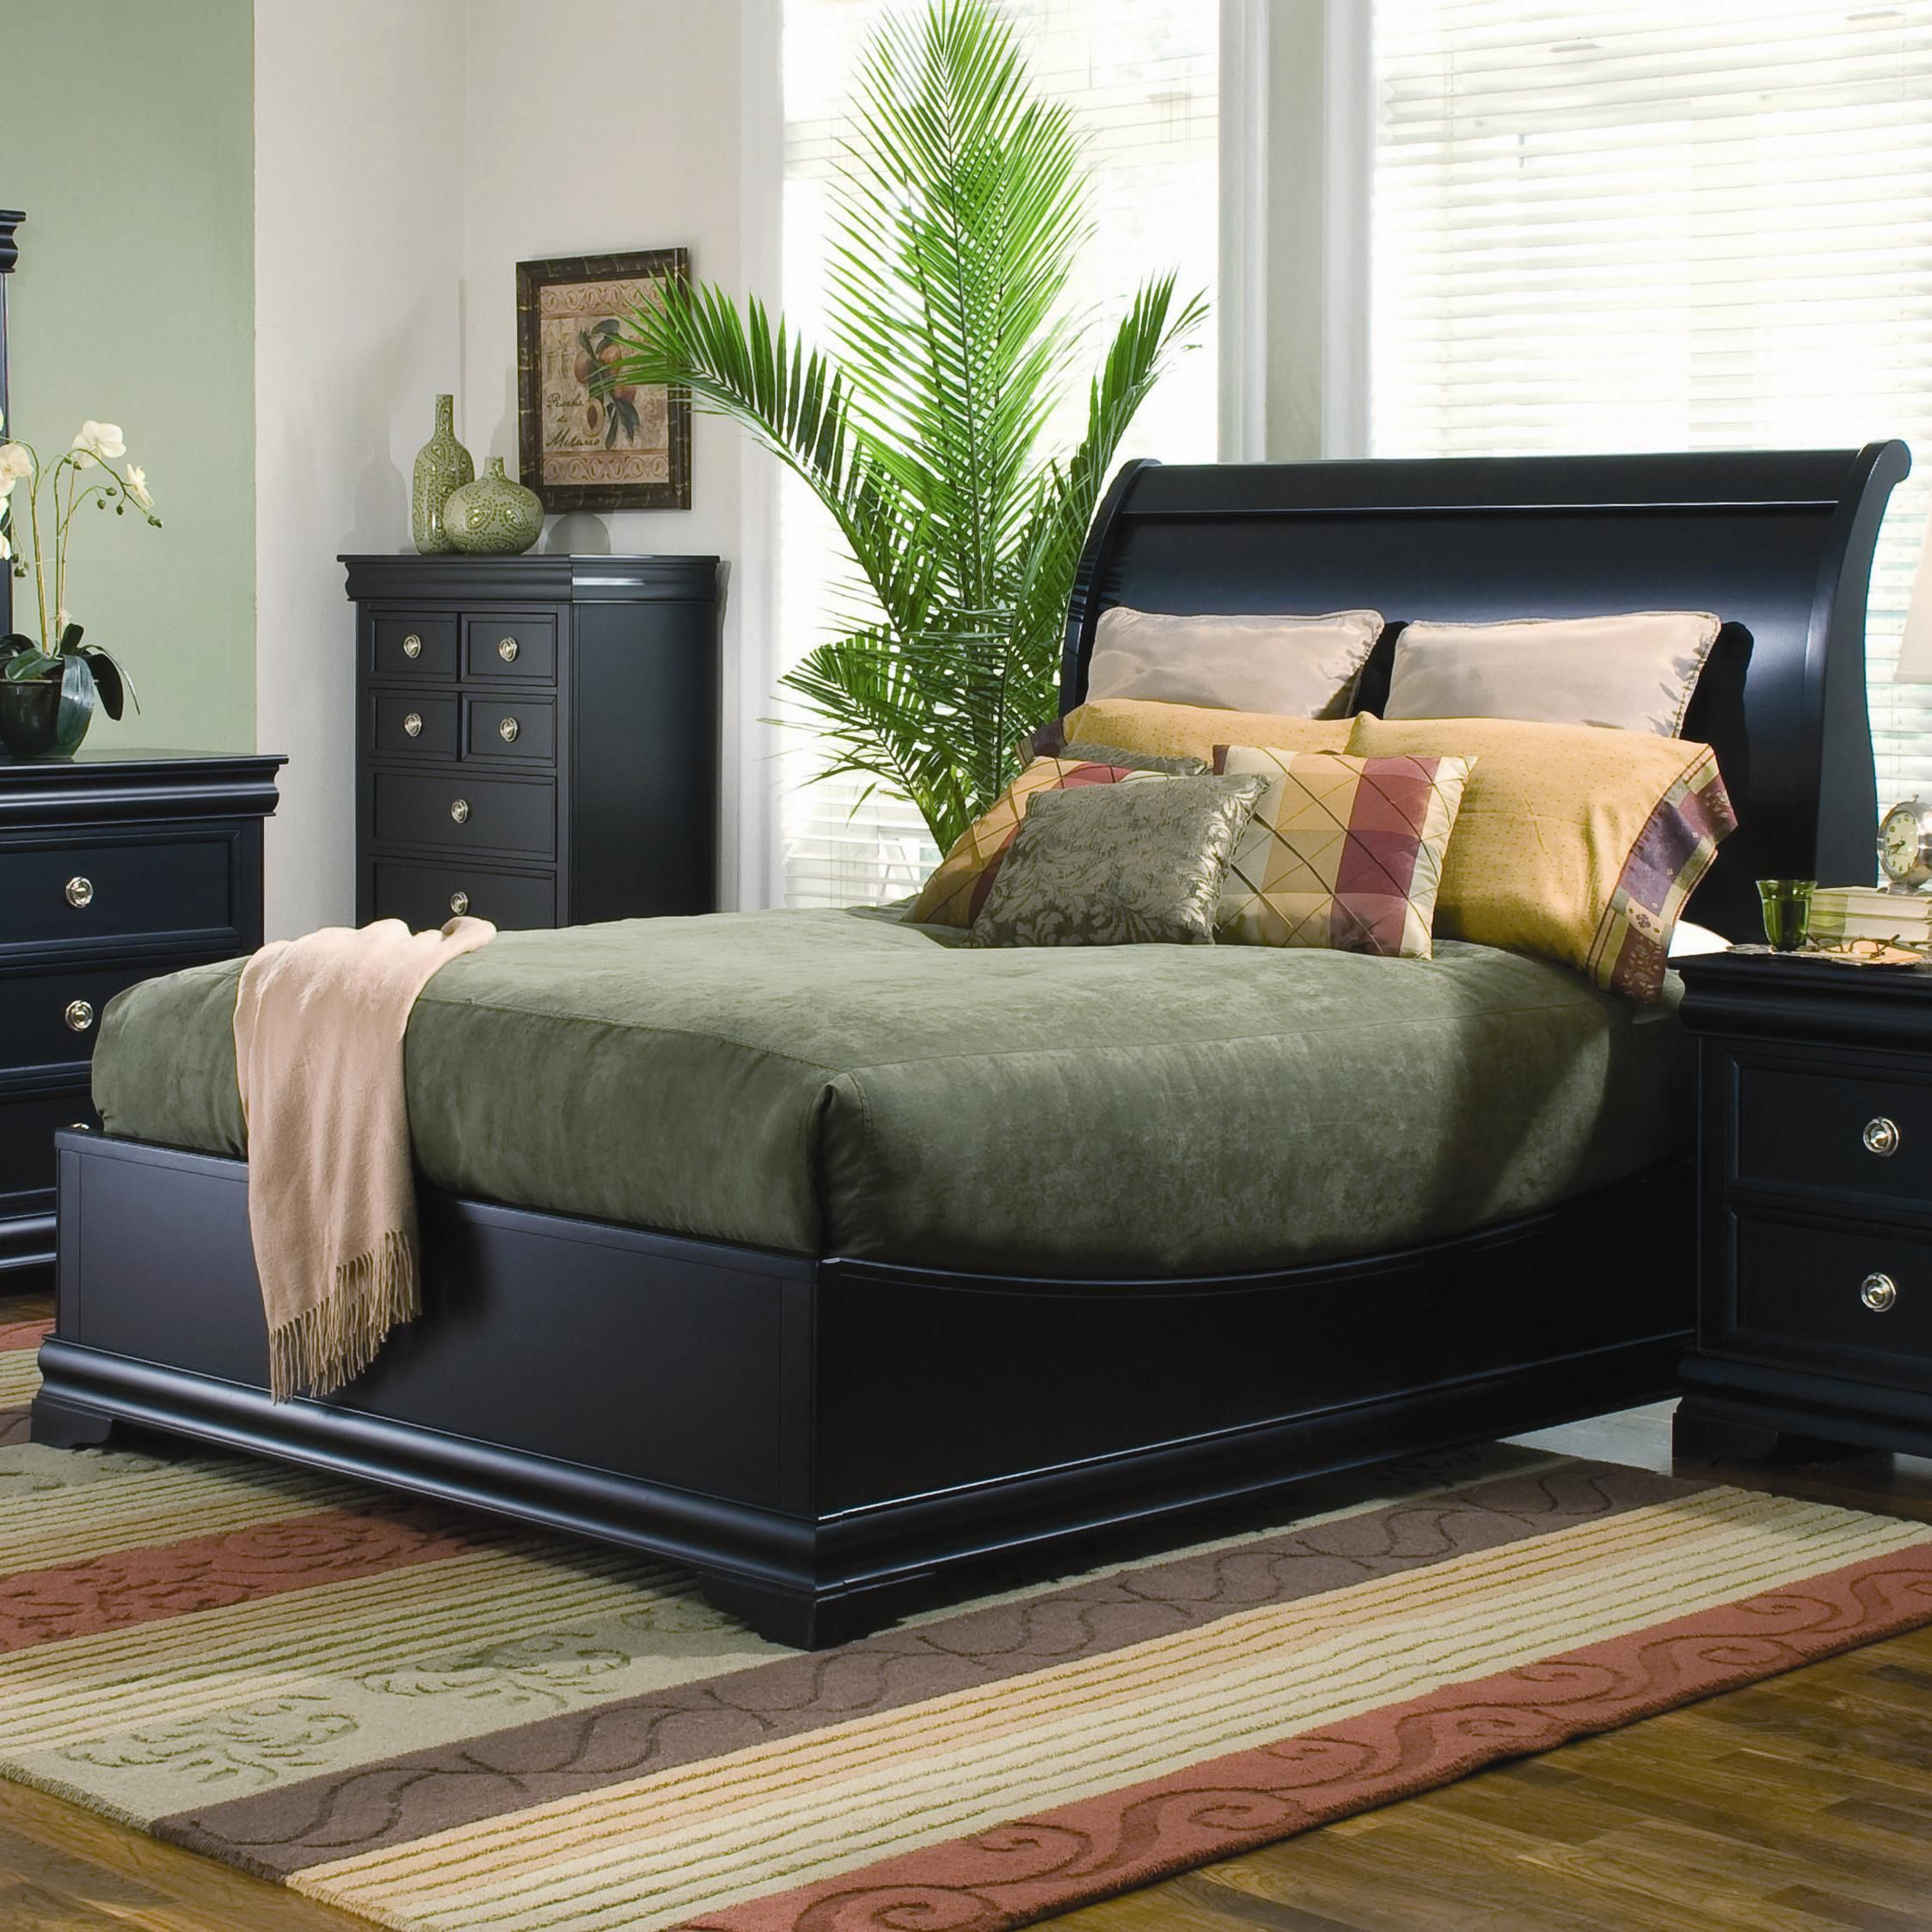 Duncan California King Bed By Generations By Coaster King Bed Frame King Size Bed Frame Sleigh Bedroom Set